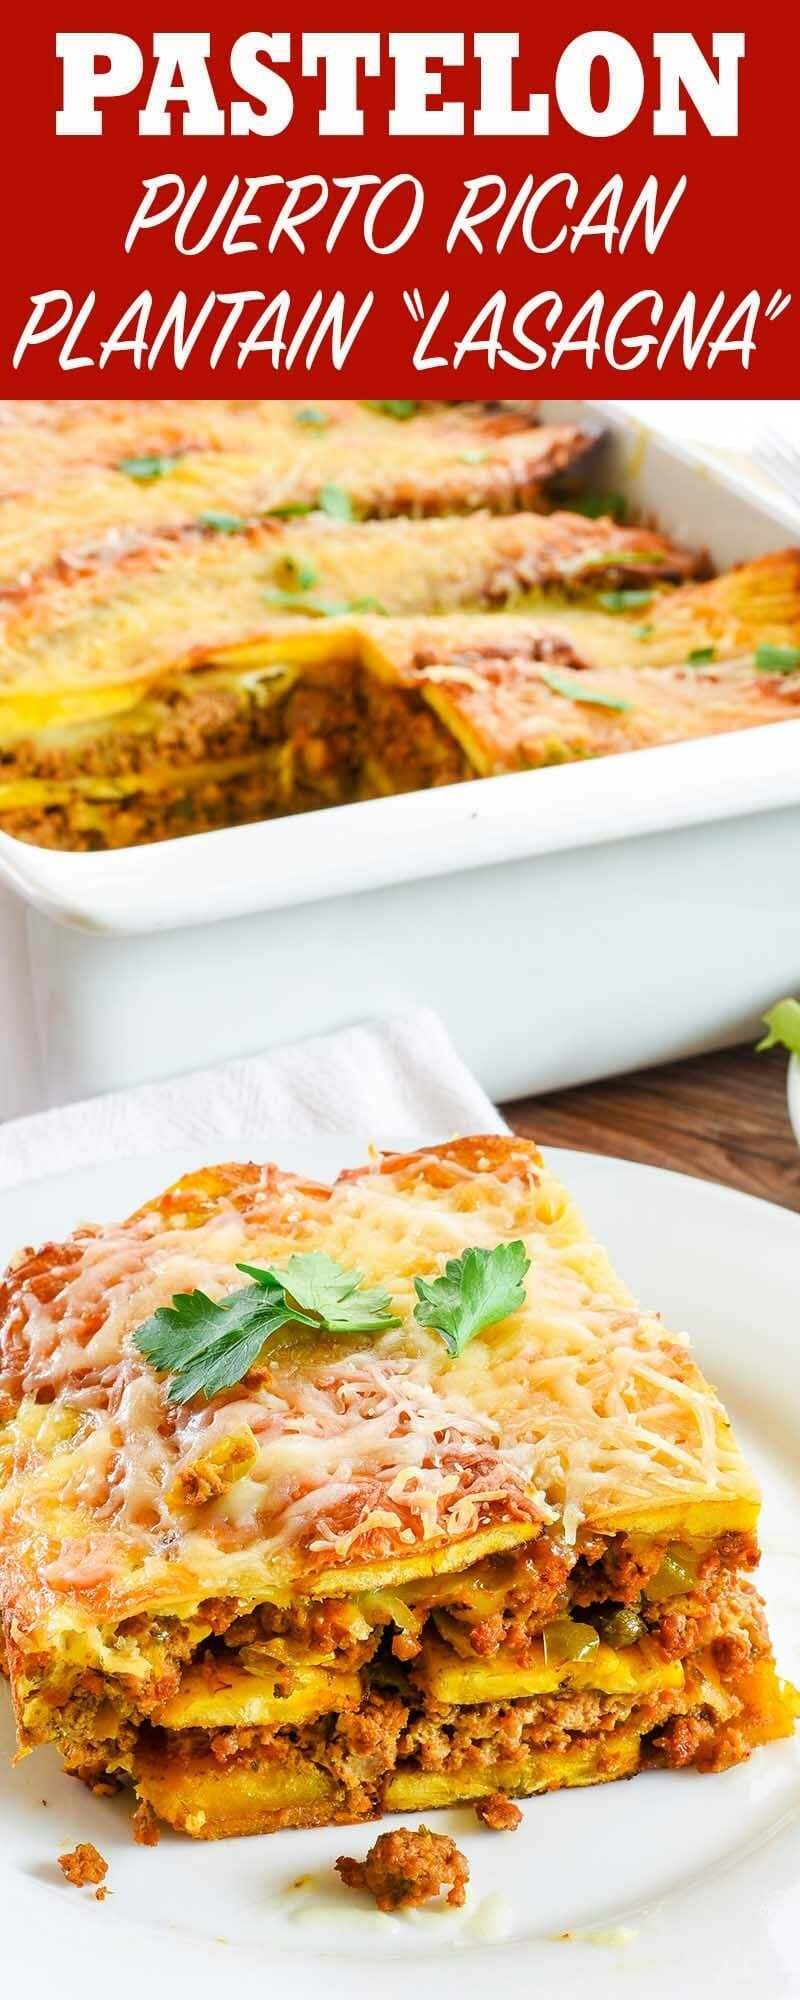 "(Puerto Rican Plantain ""Lasagna"") Pastelón is a classic Puerto Rican dish made with layers of thinly-sliced plantains, ground beef, and cheese! It's the perfect casserole to make for a potluck or family gathering.Pastelón is a classic Puerto Rican dish made with layers of thinly-sliced plantains, ground beef, and cheese! It's the perfe..."